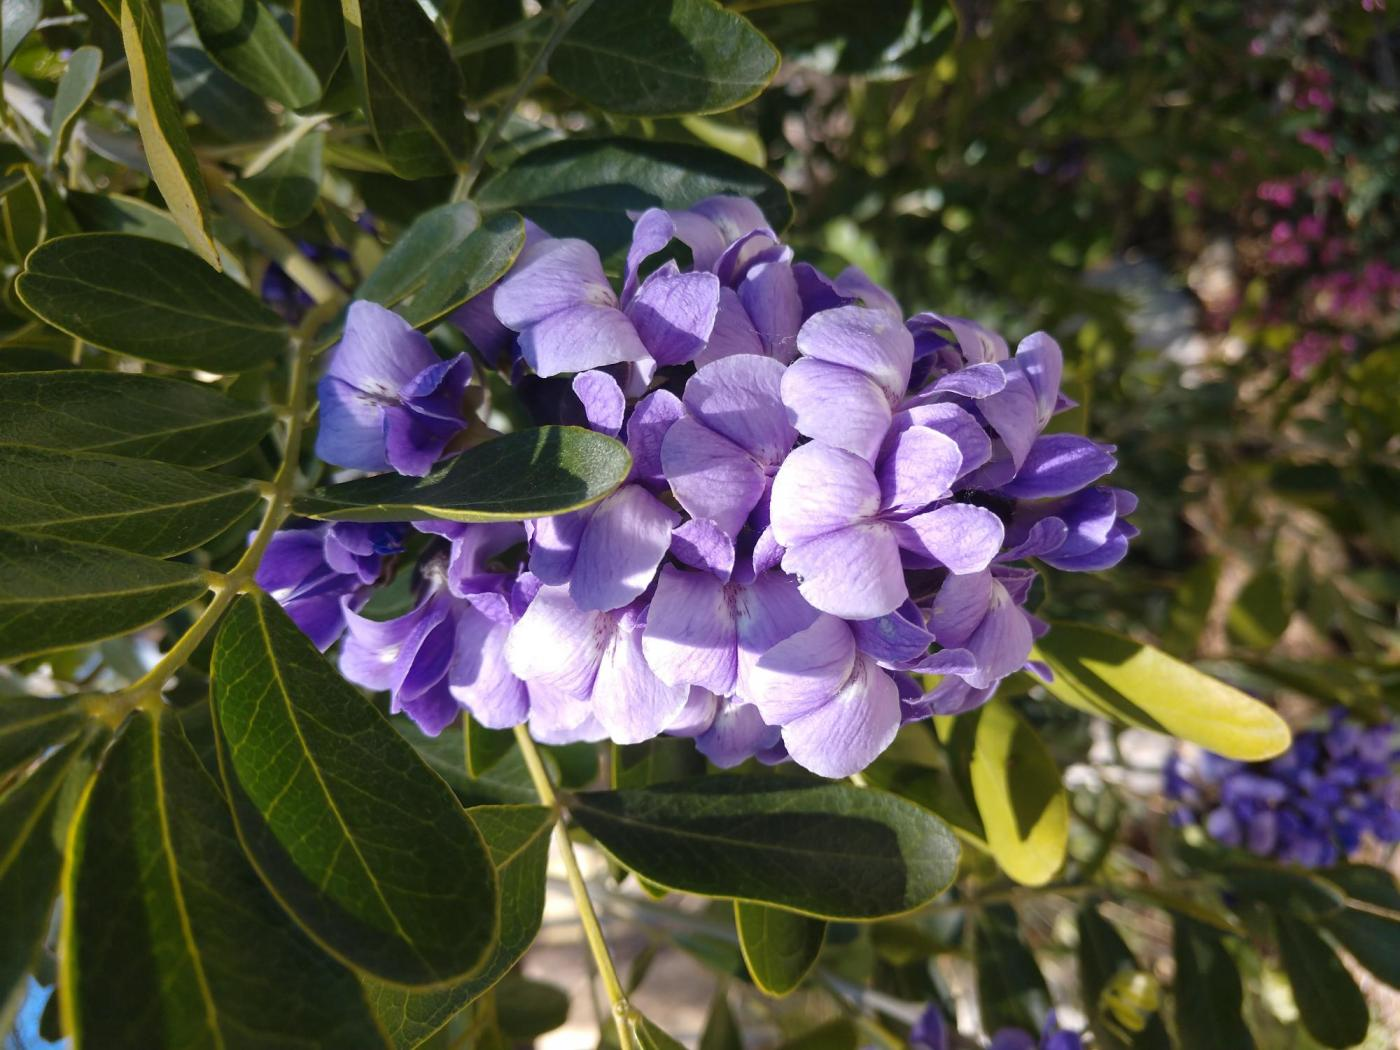 Texas Mountain Laurel in bloom.